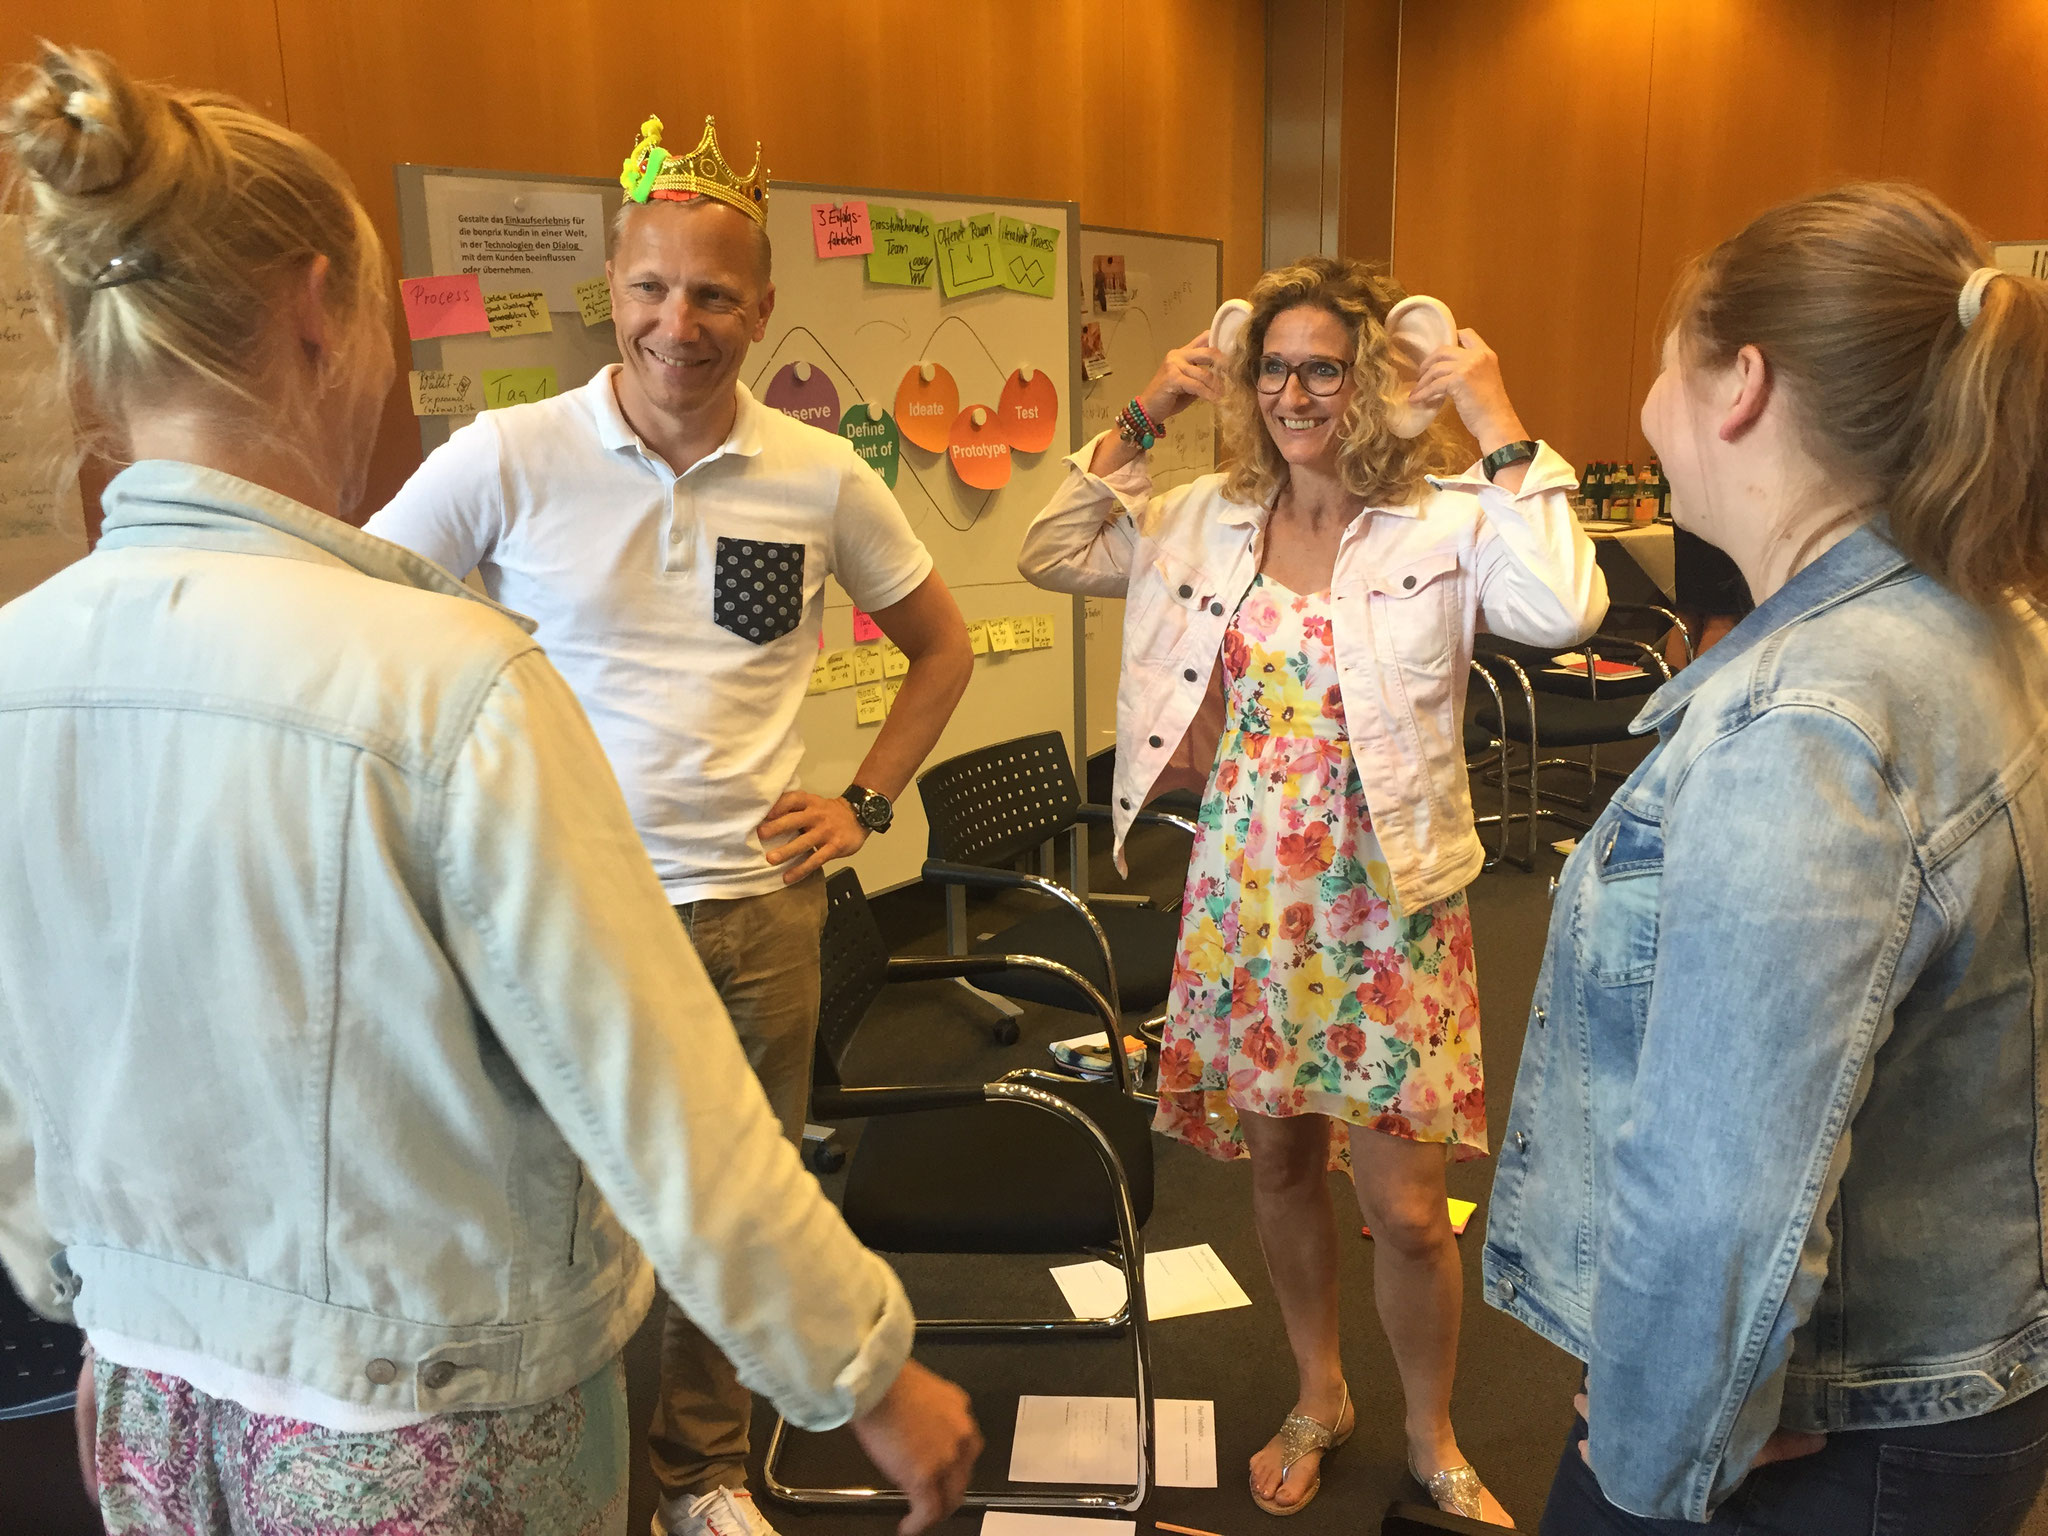 Im Workshop Innovation Coach - Advanced planen die Teilnehmer detailliert ihren ersten Design Thinking-Workshop.